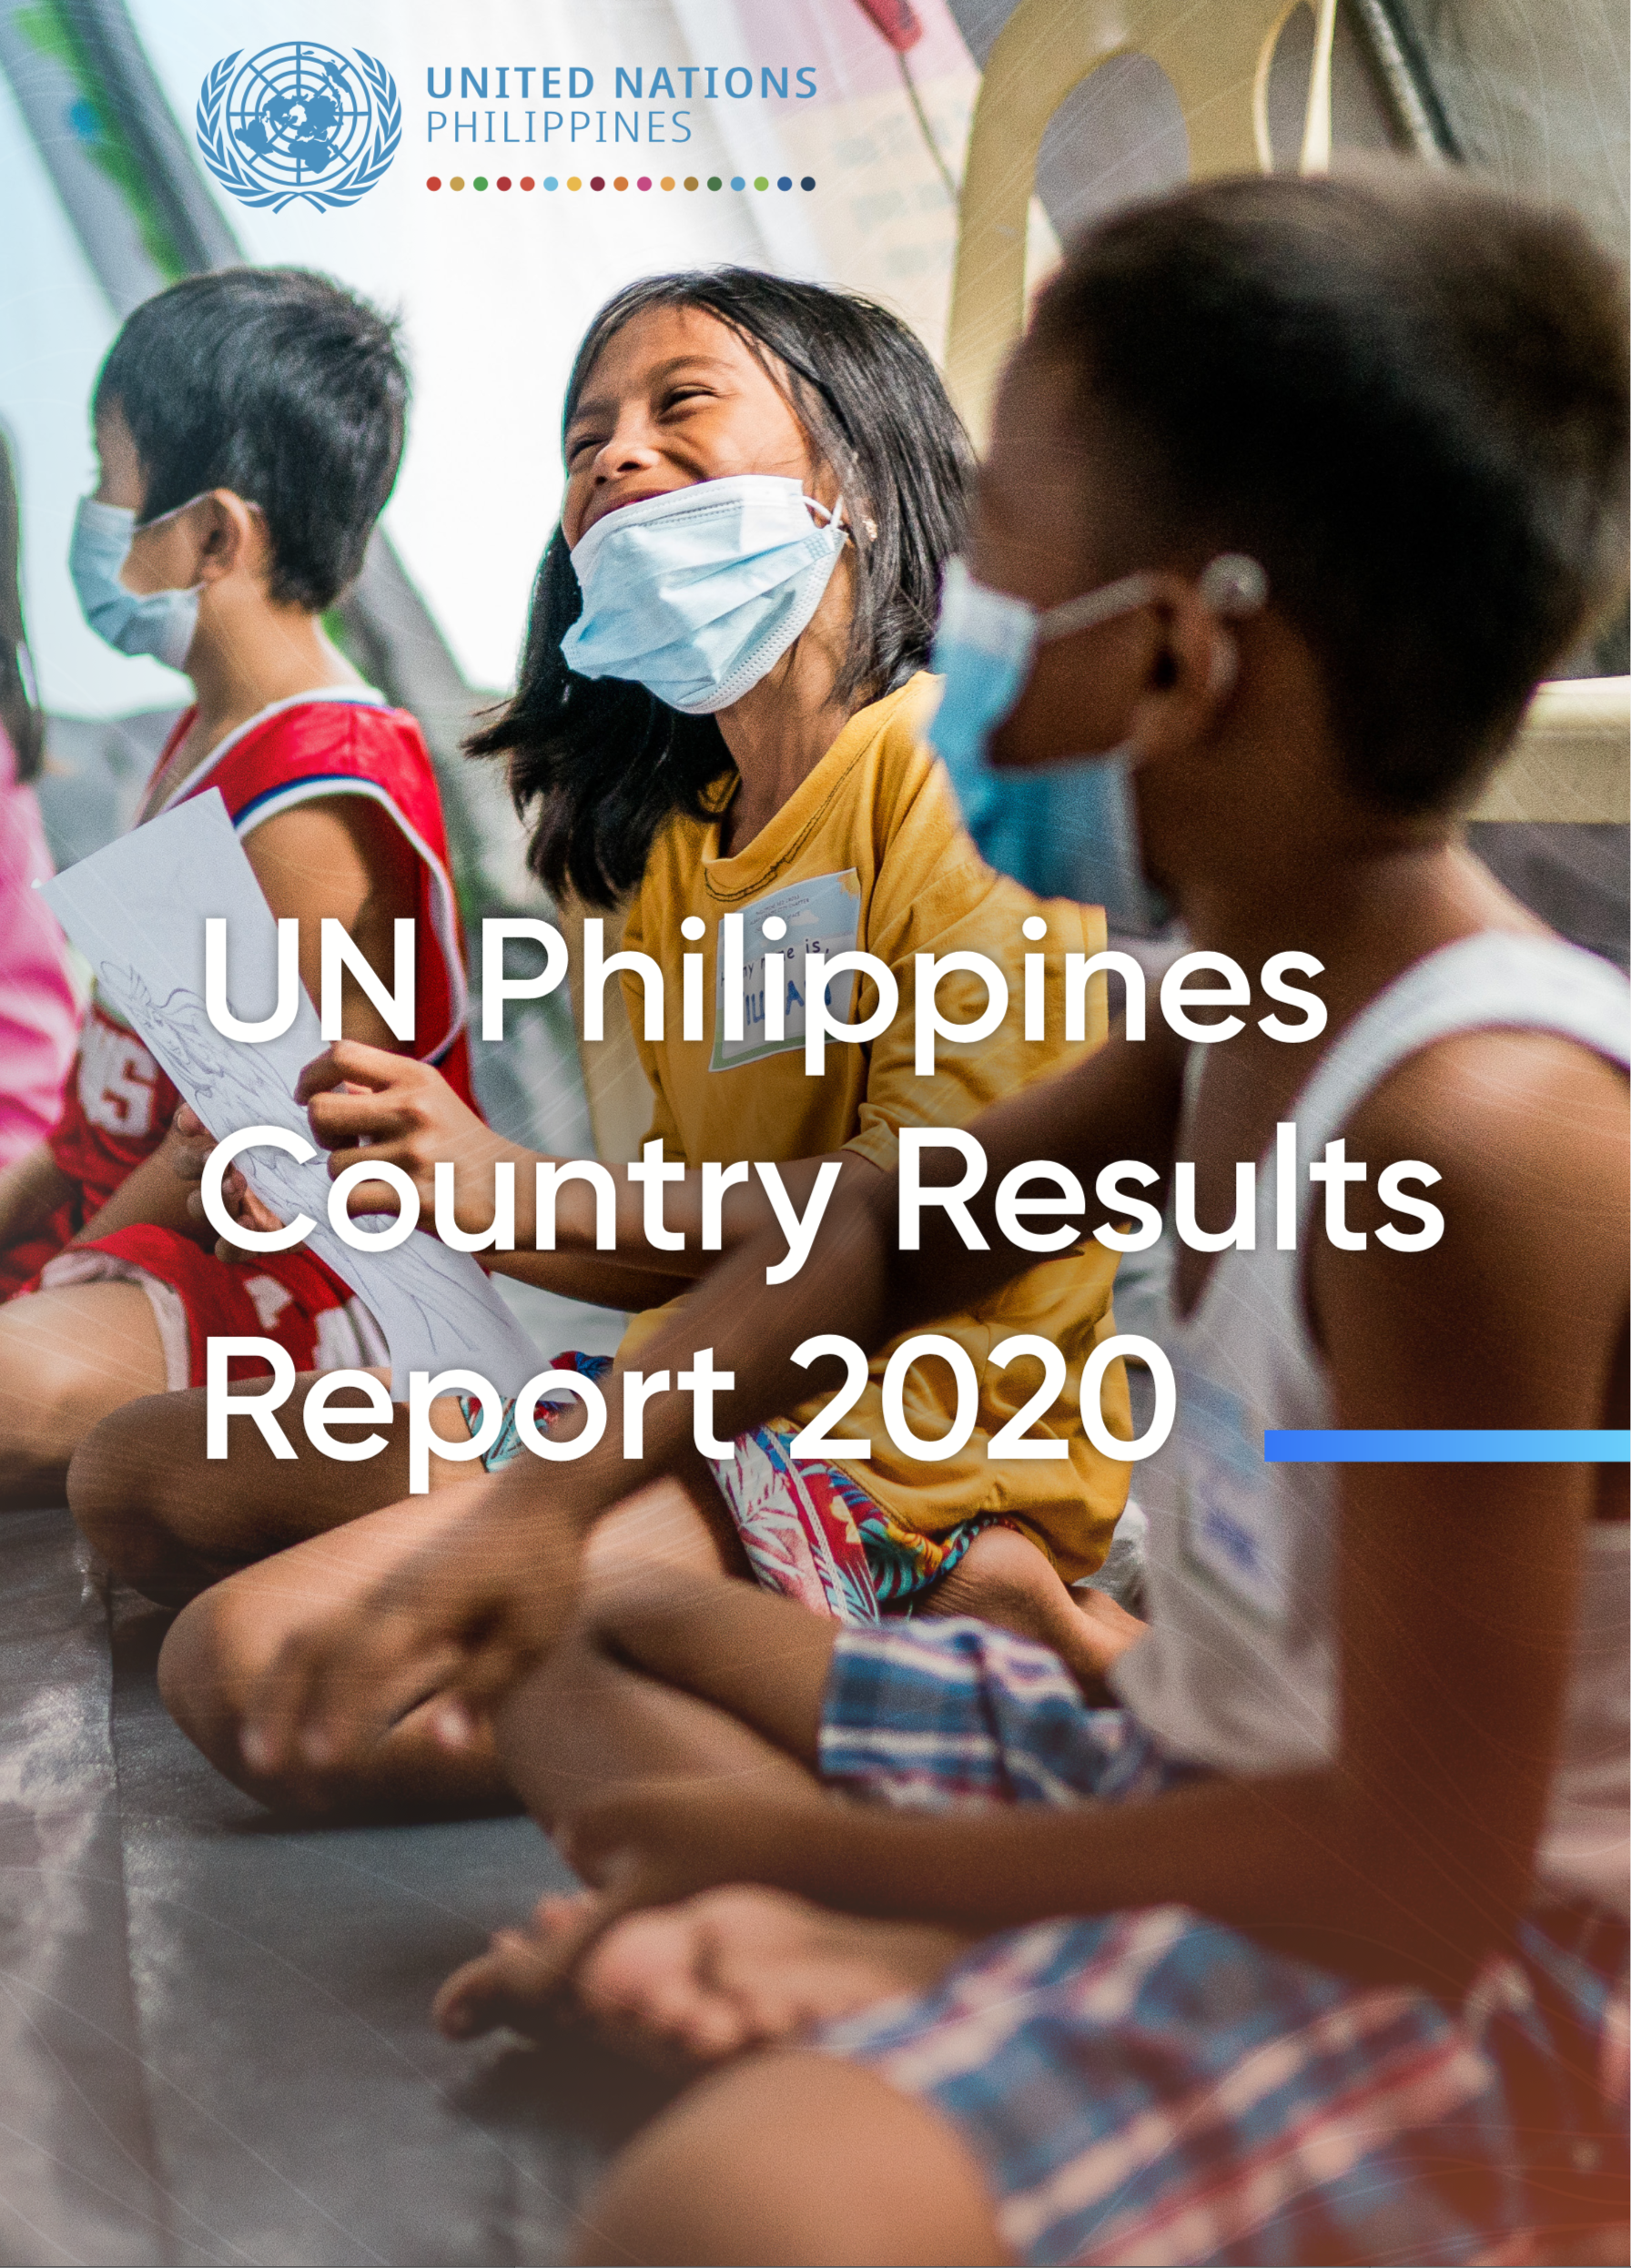 Cover of the UNCT Philippines Country Results Report 2020